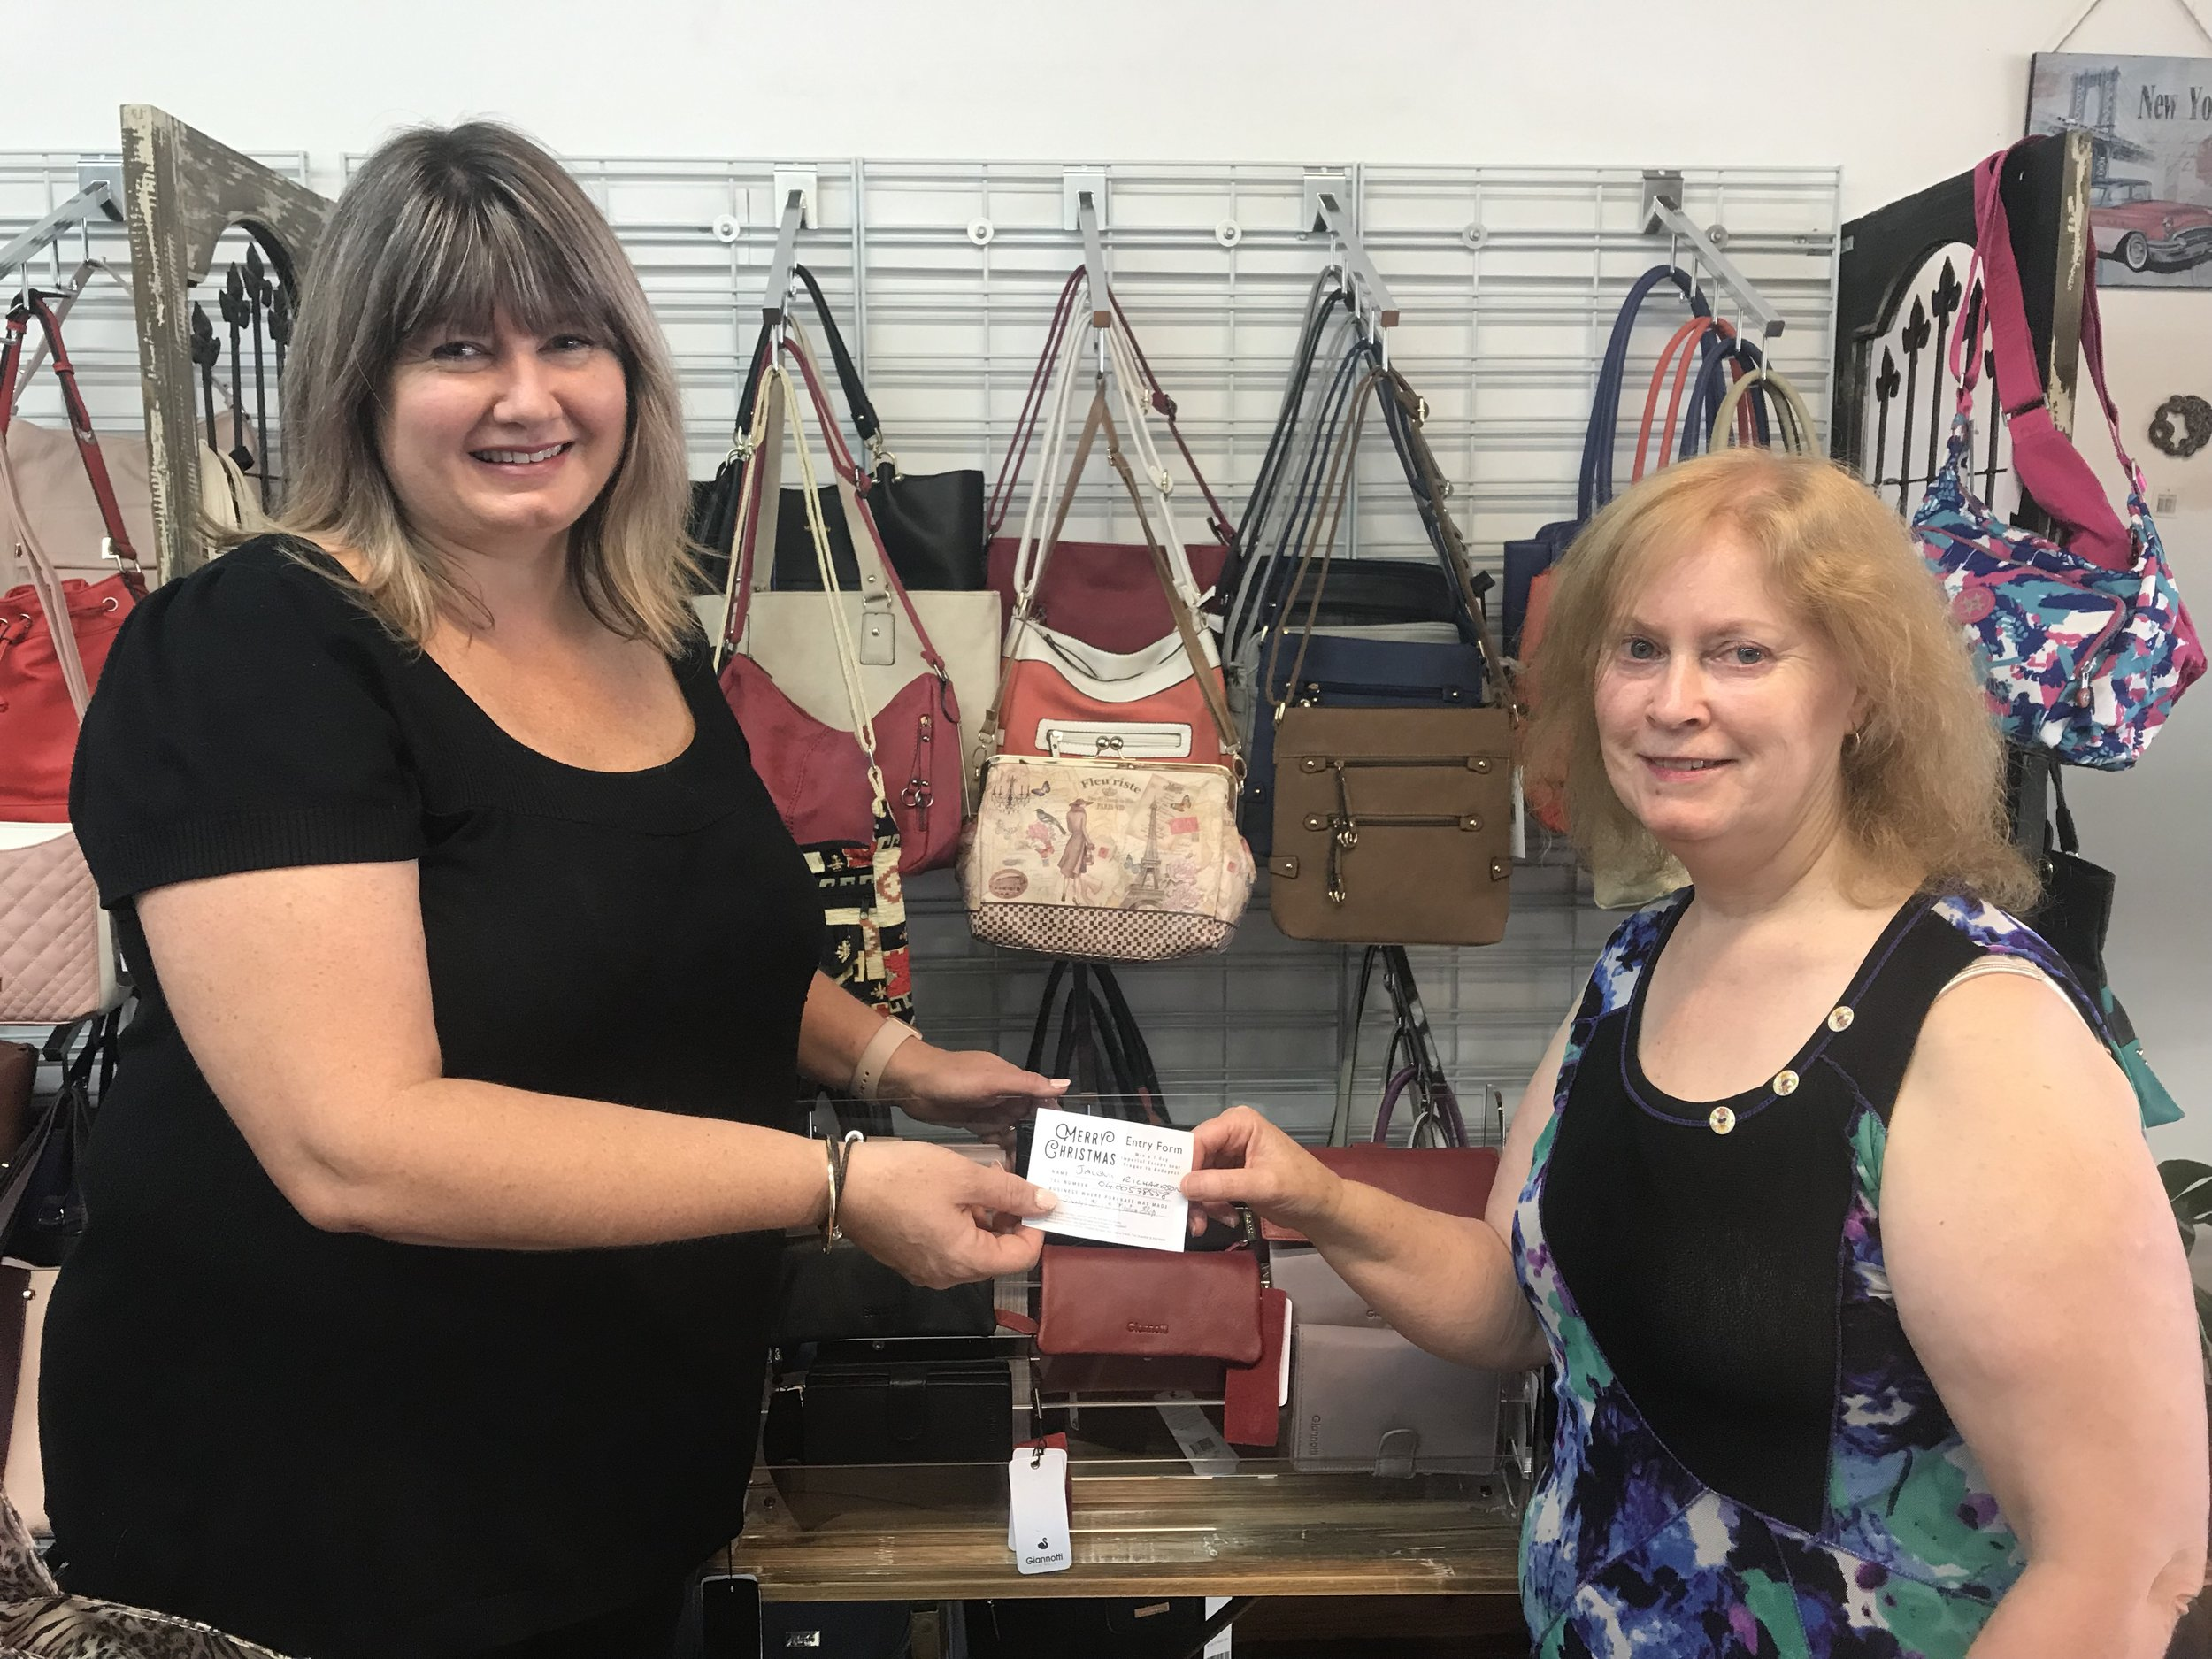 Congratulations to our lucky winner of 2018 - Jaquii Richarson. - Jaquii purchased a purse from Dusty's Bag and Kitchen Shop.